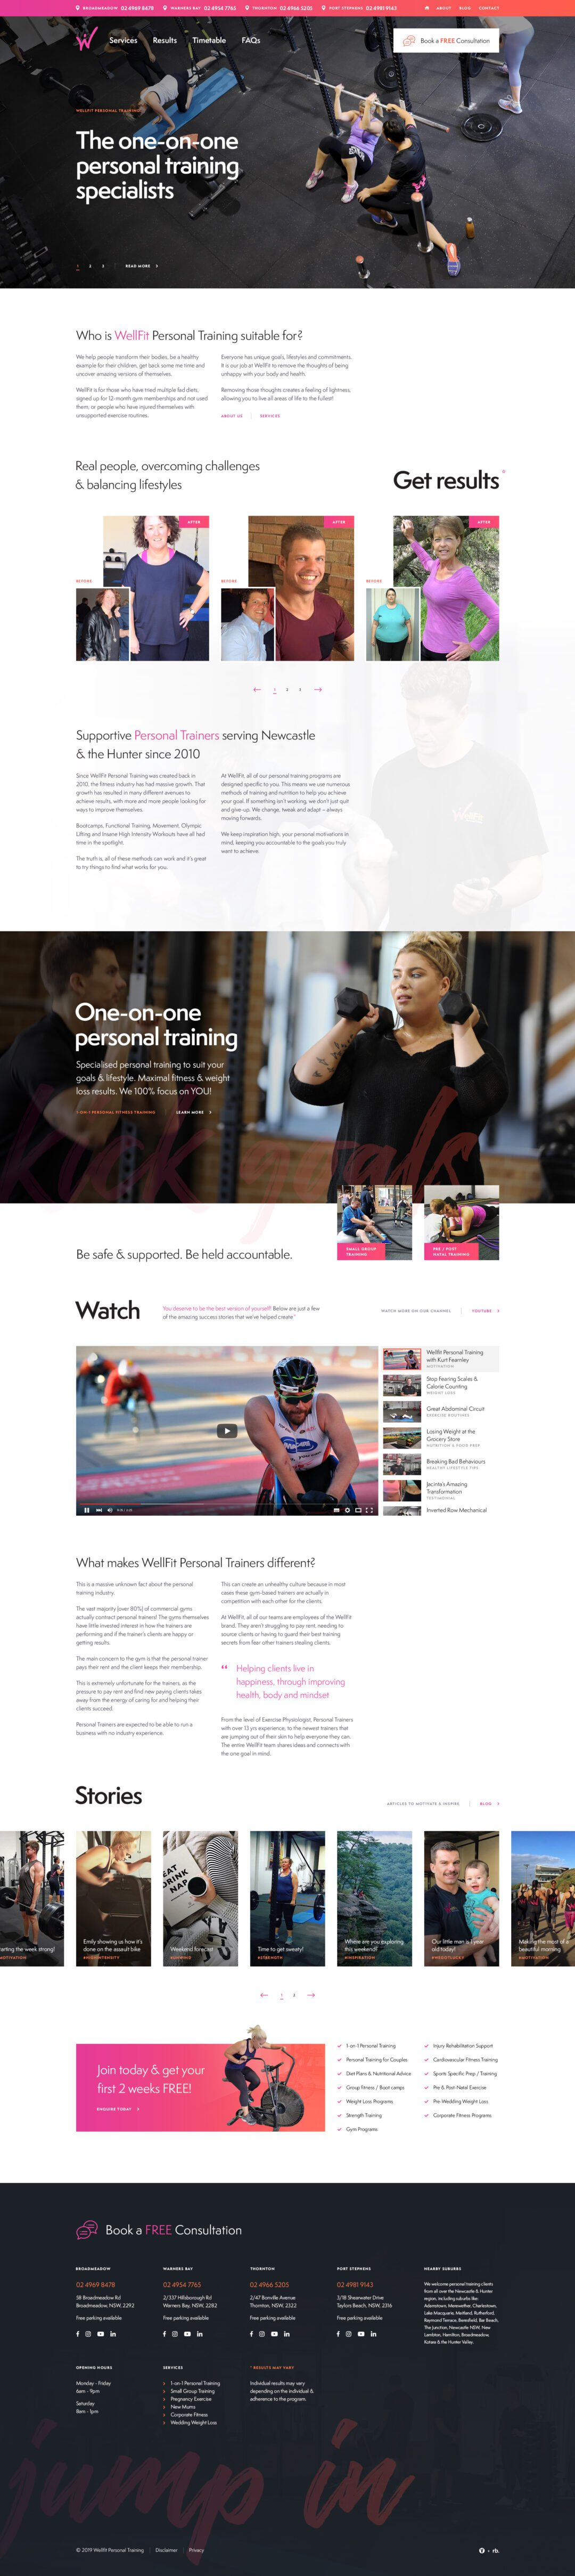 website homepage design for Wellfit Personal Training in Newcastle, NSW